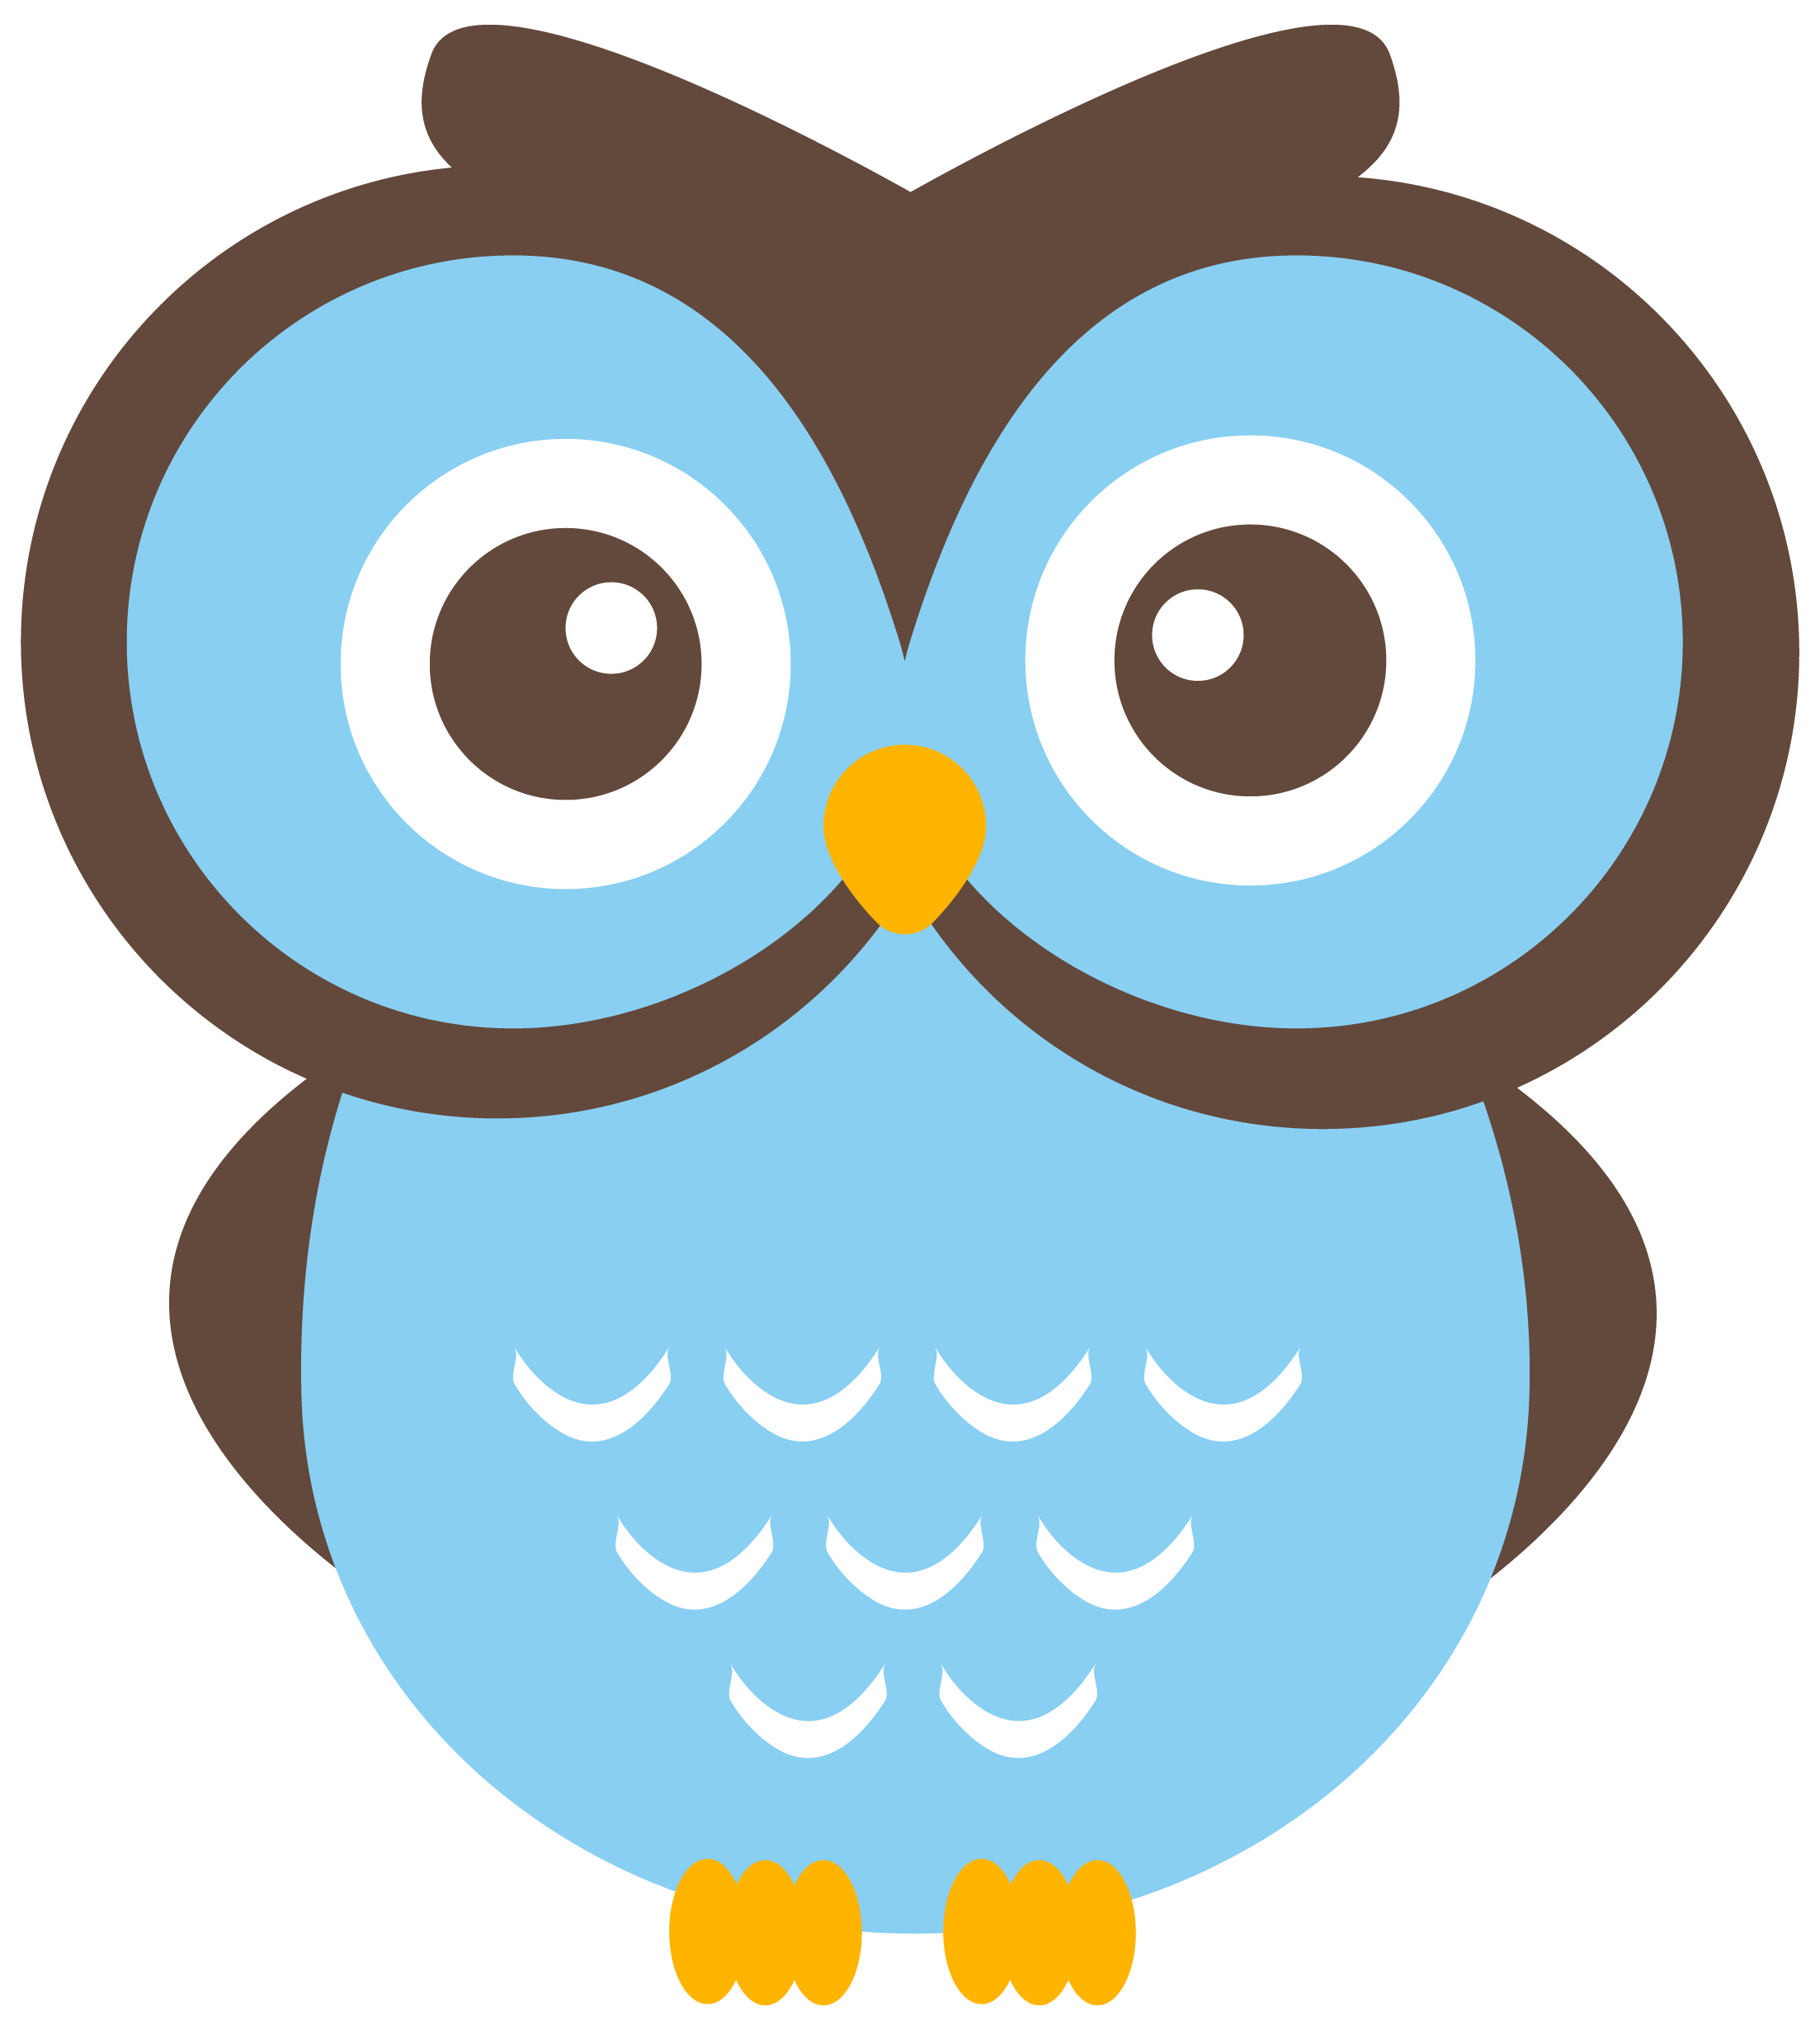 Cute Owl Cartoon Clip Art - ClipartFest-Cute owl cartoon clip art - ClipartFest-4